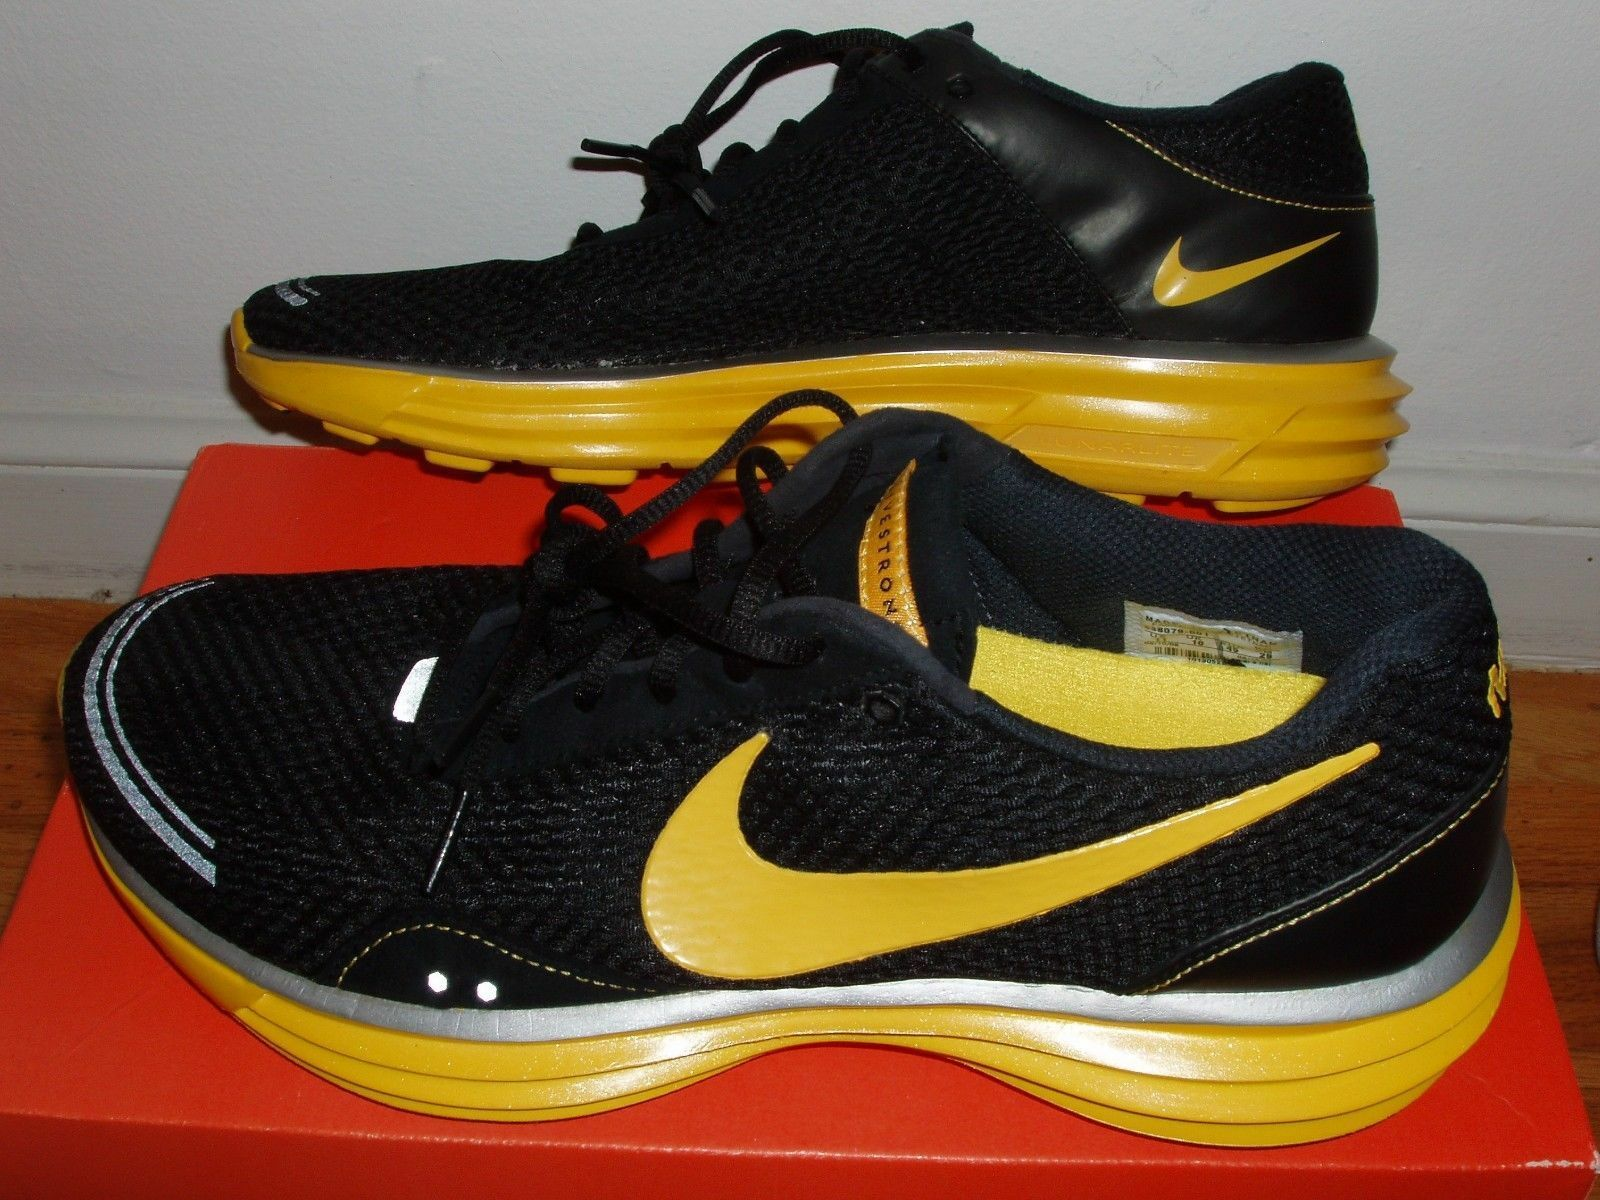 NEW Nike LunarTrainer men 11 lunar trainer running shoes shoes shoes black yellow livestrong 4a912a